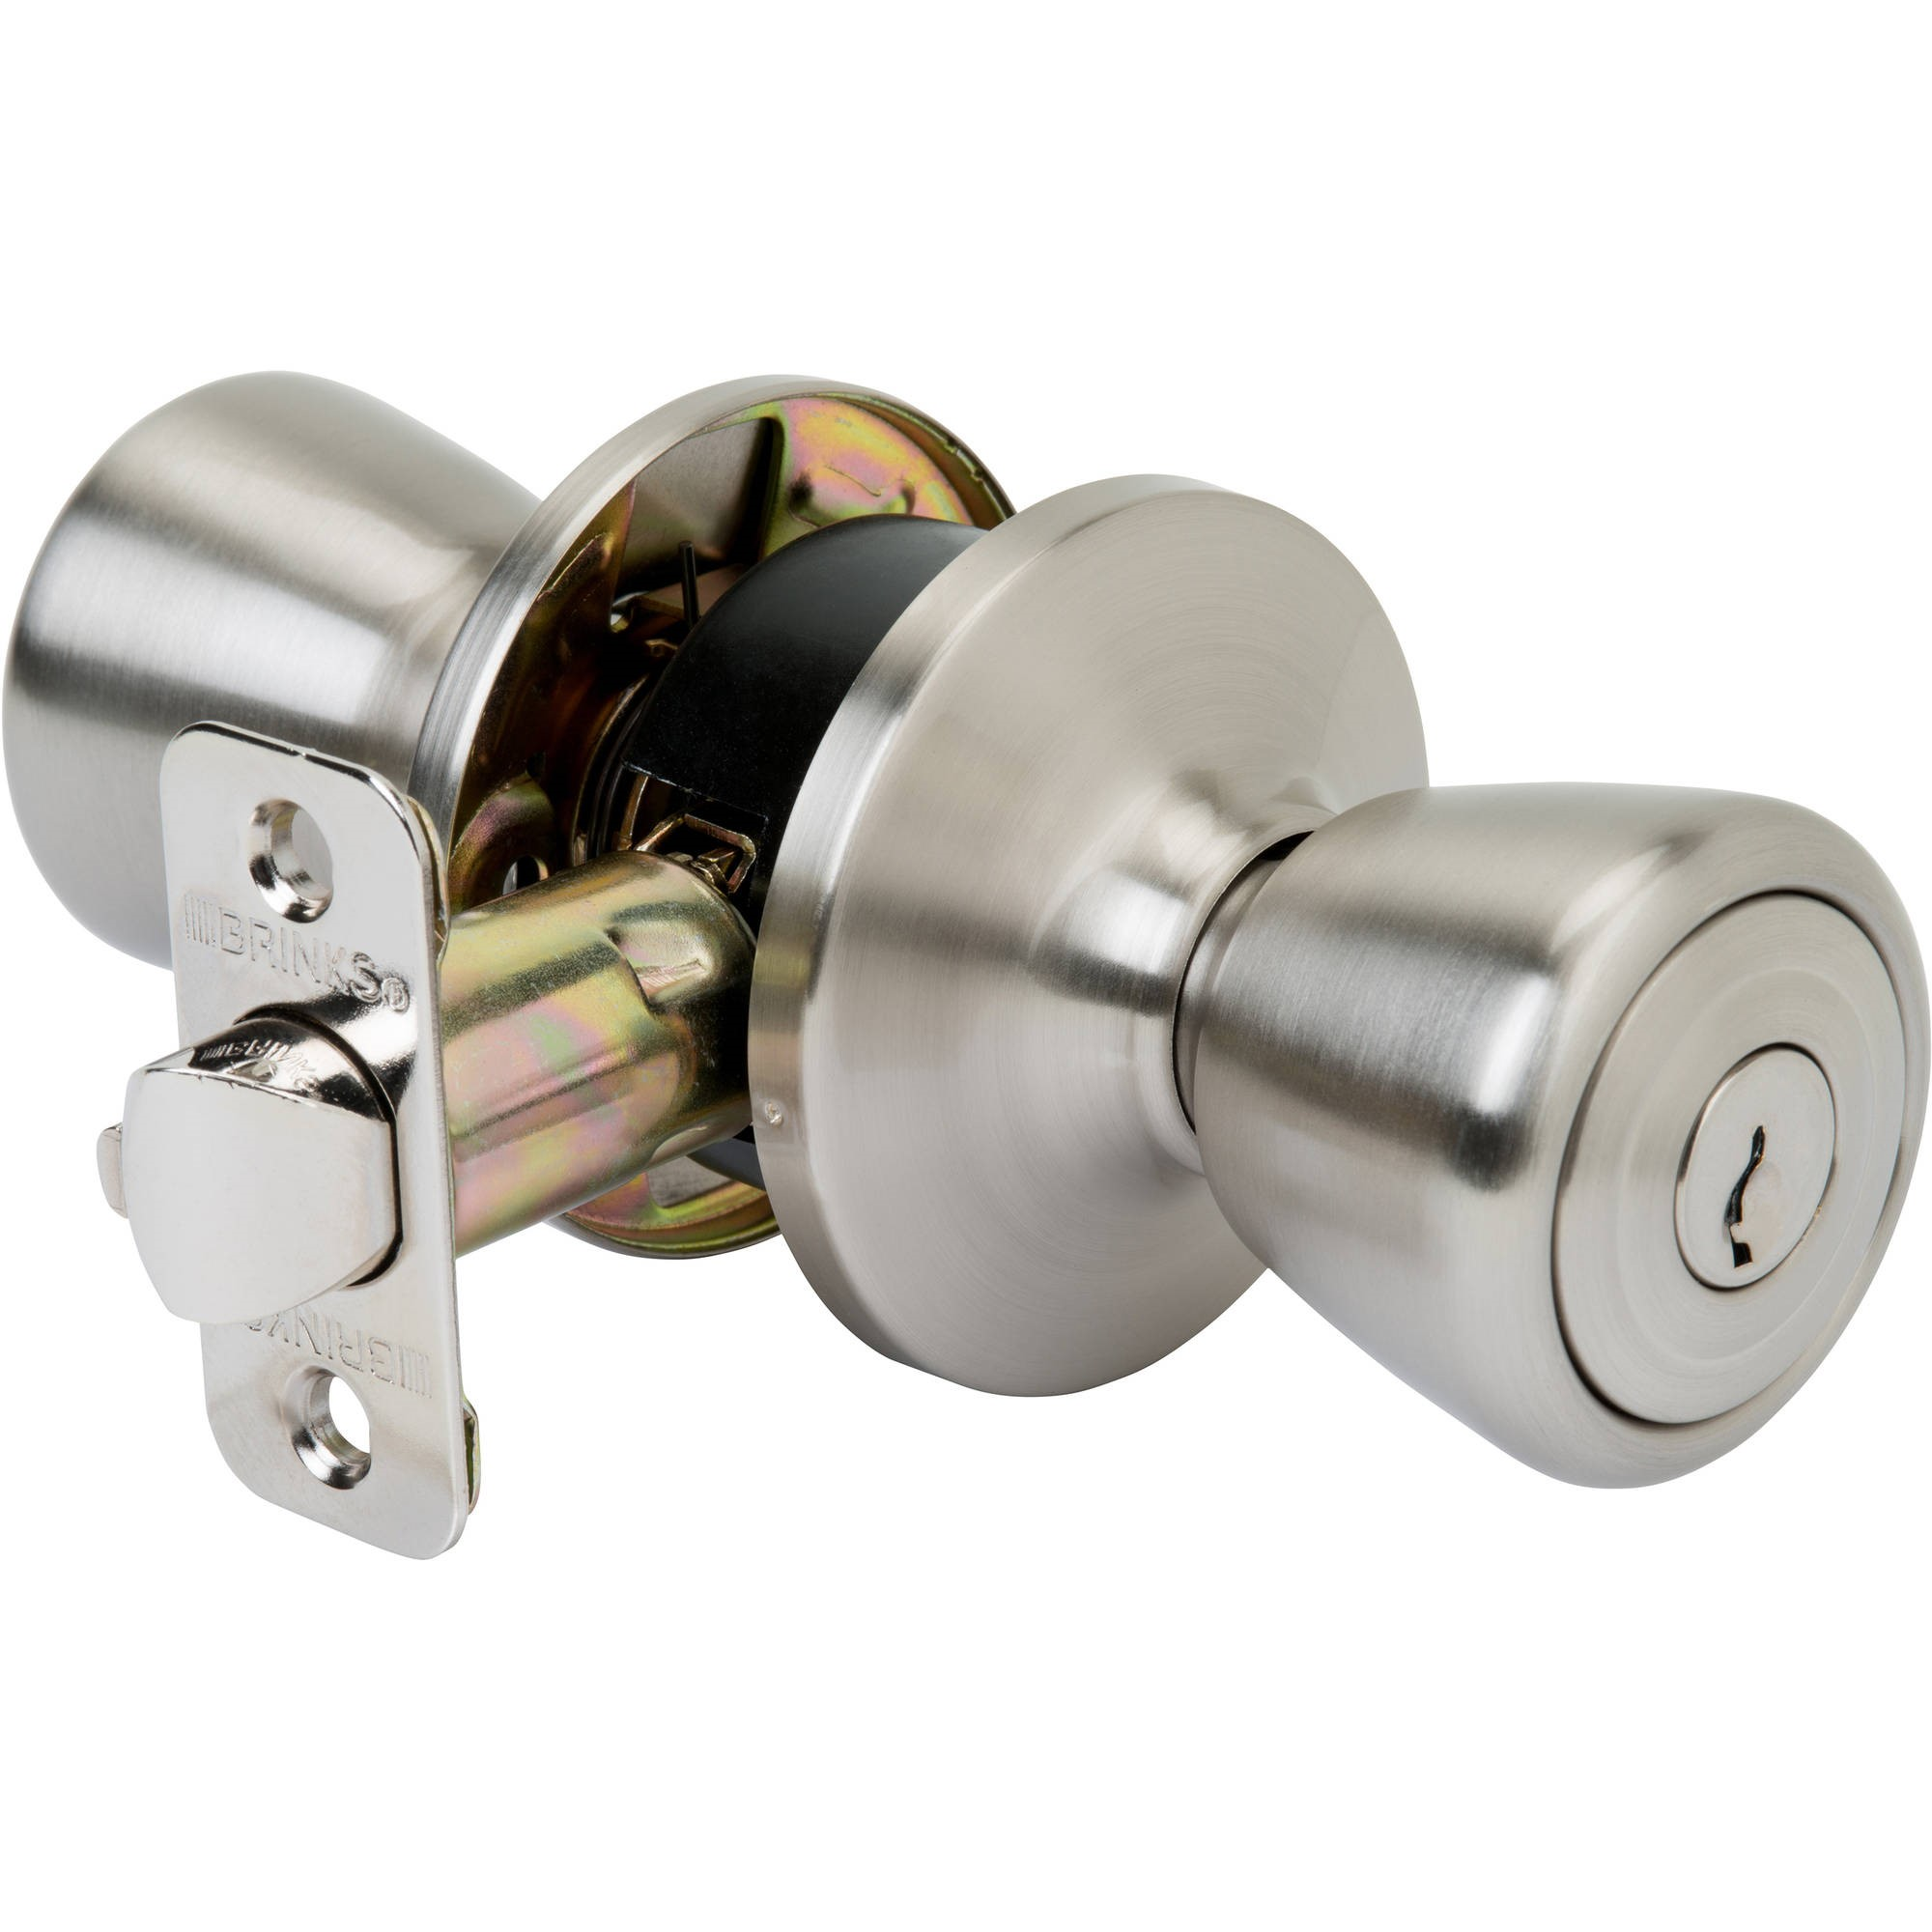 Brink's Tulip Style Keyed Entry Door Knob Satin Nickel